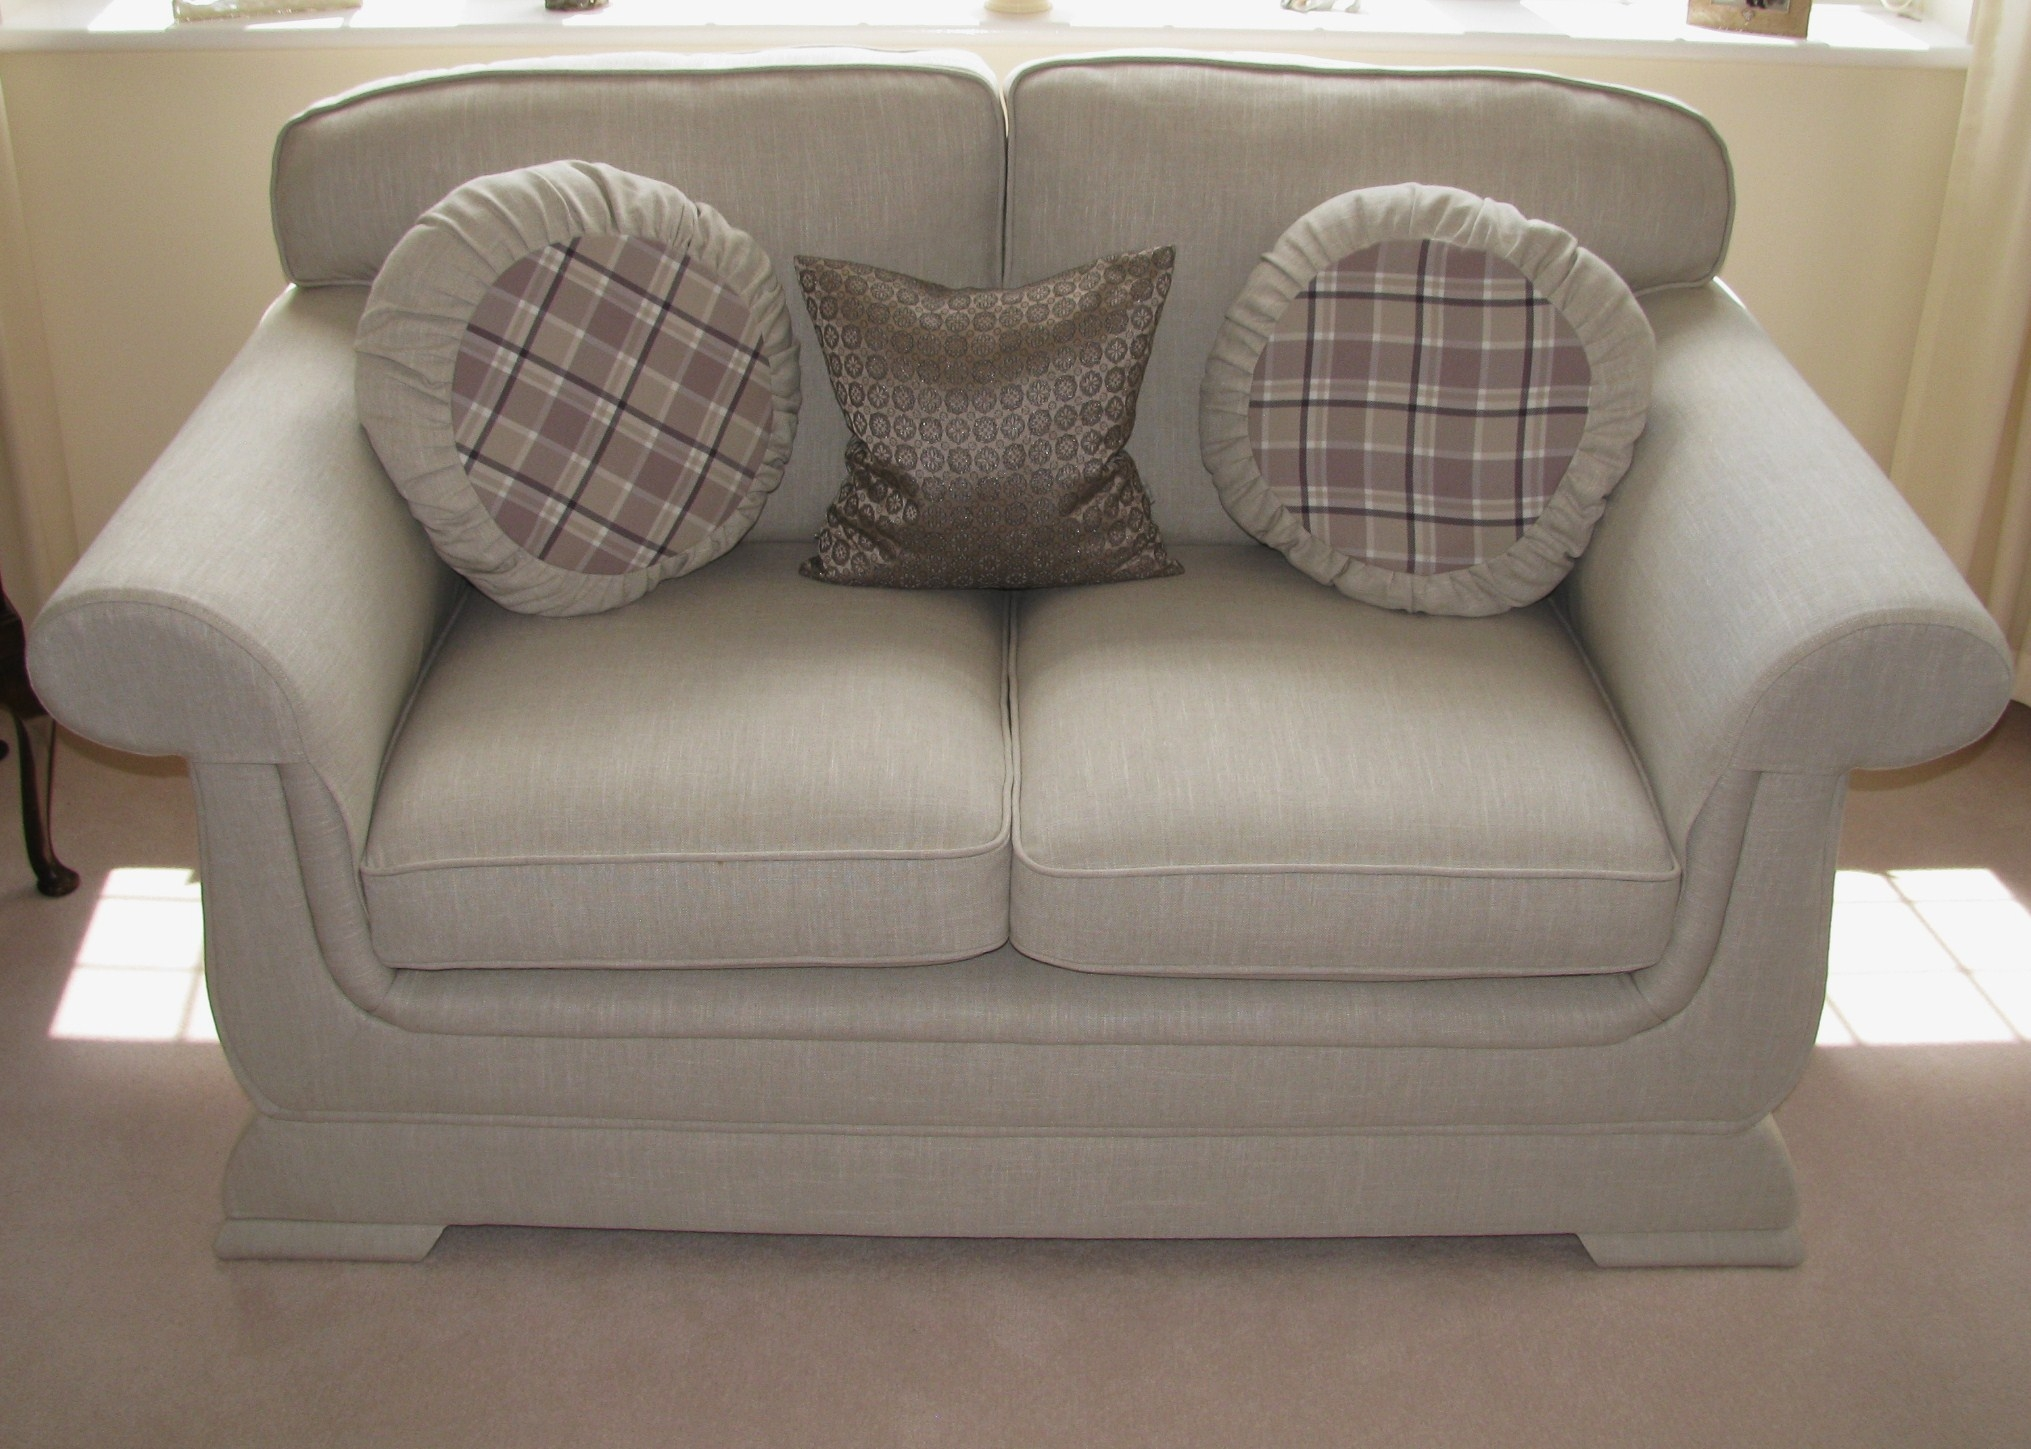 Sofas Antons Upholstery With Regard To Sofas With Removable Covers (Image 11 of 15)